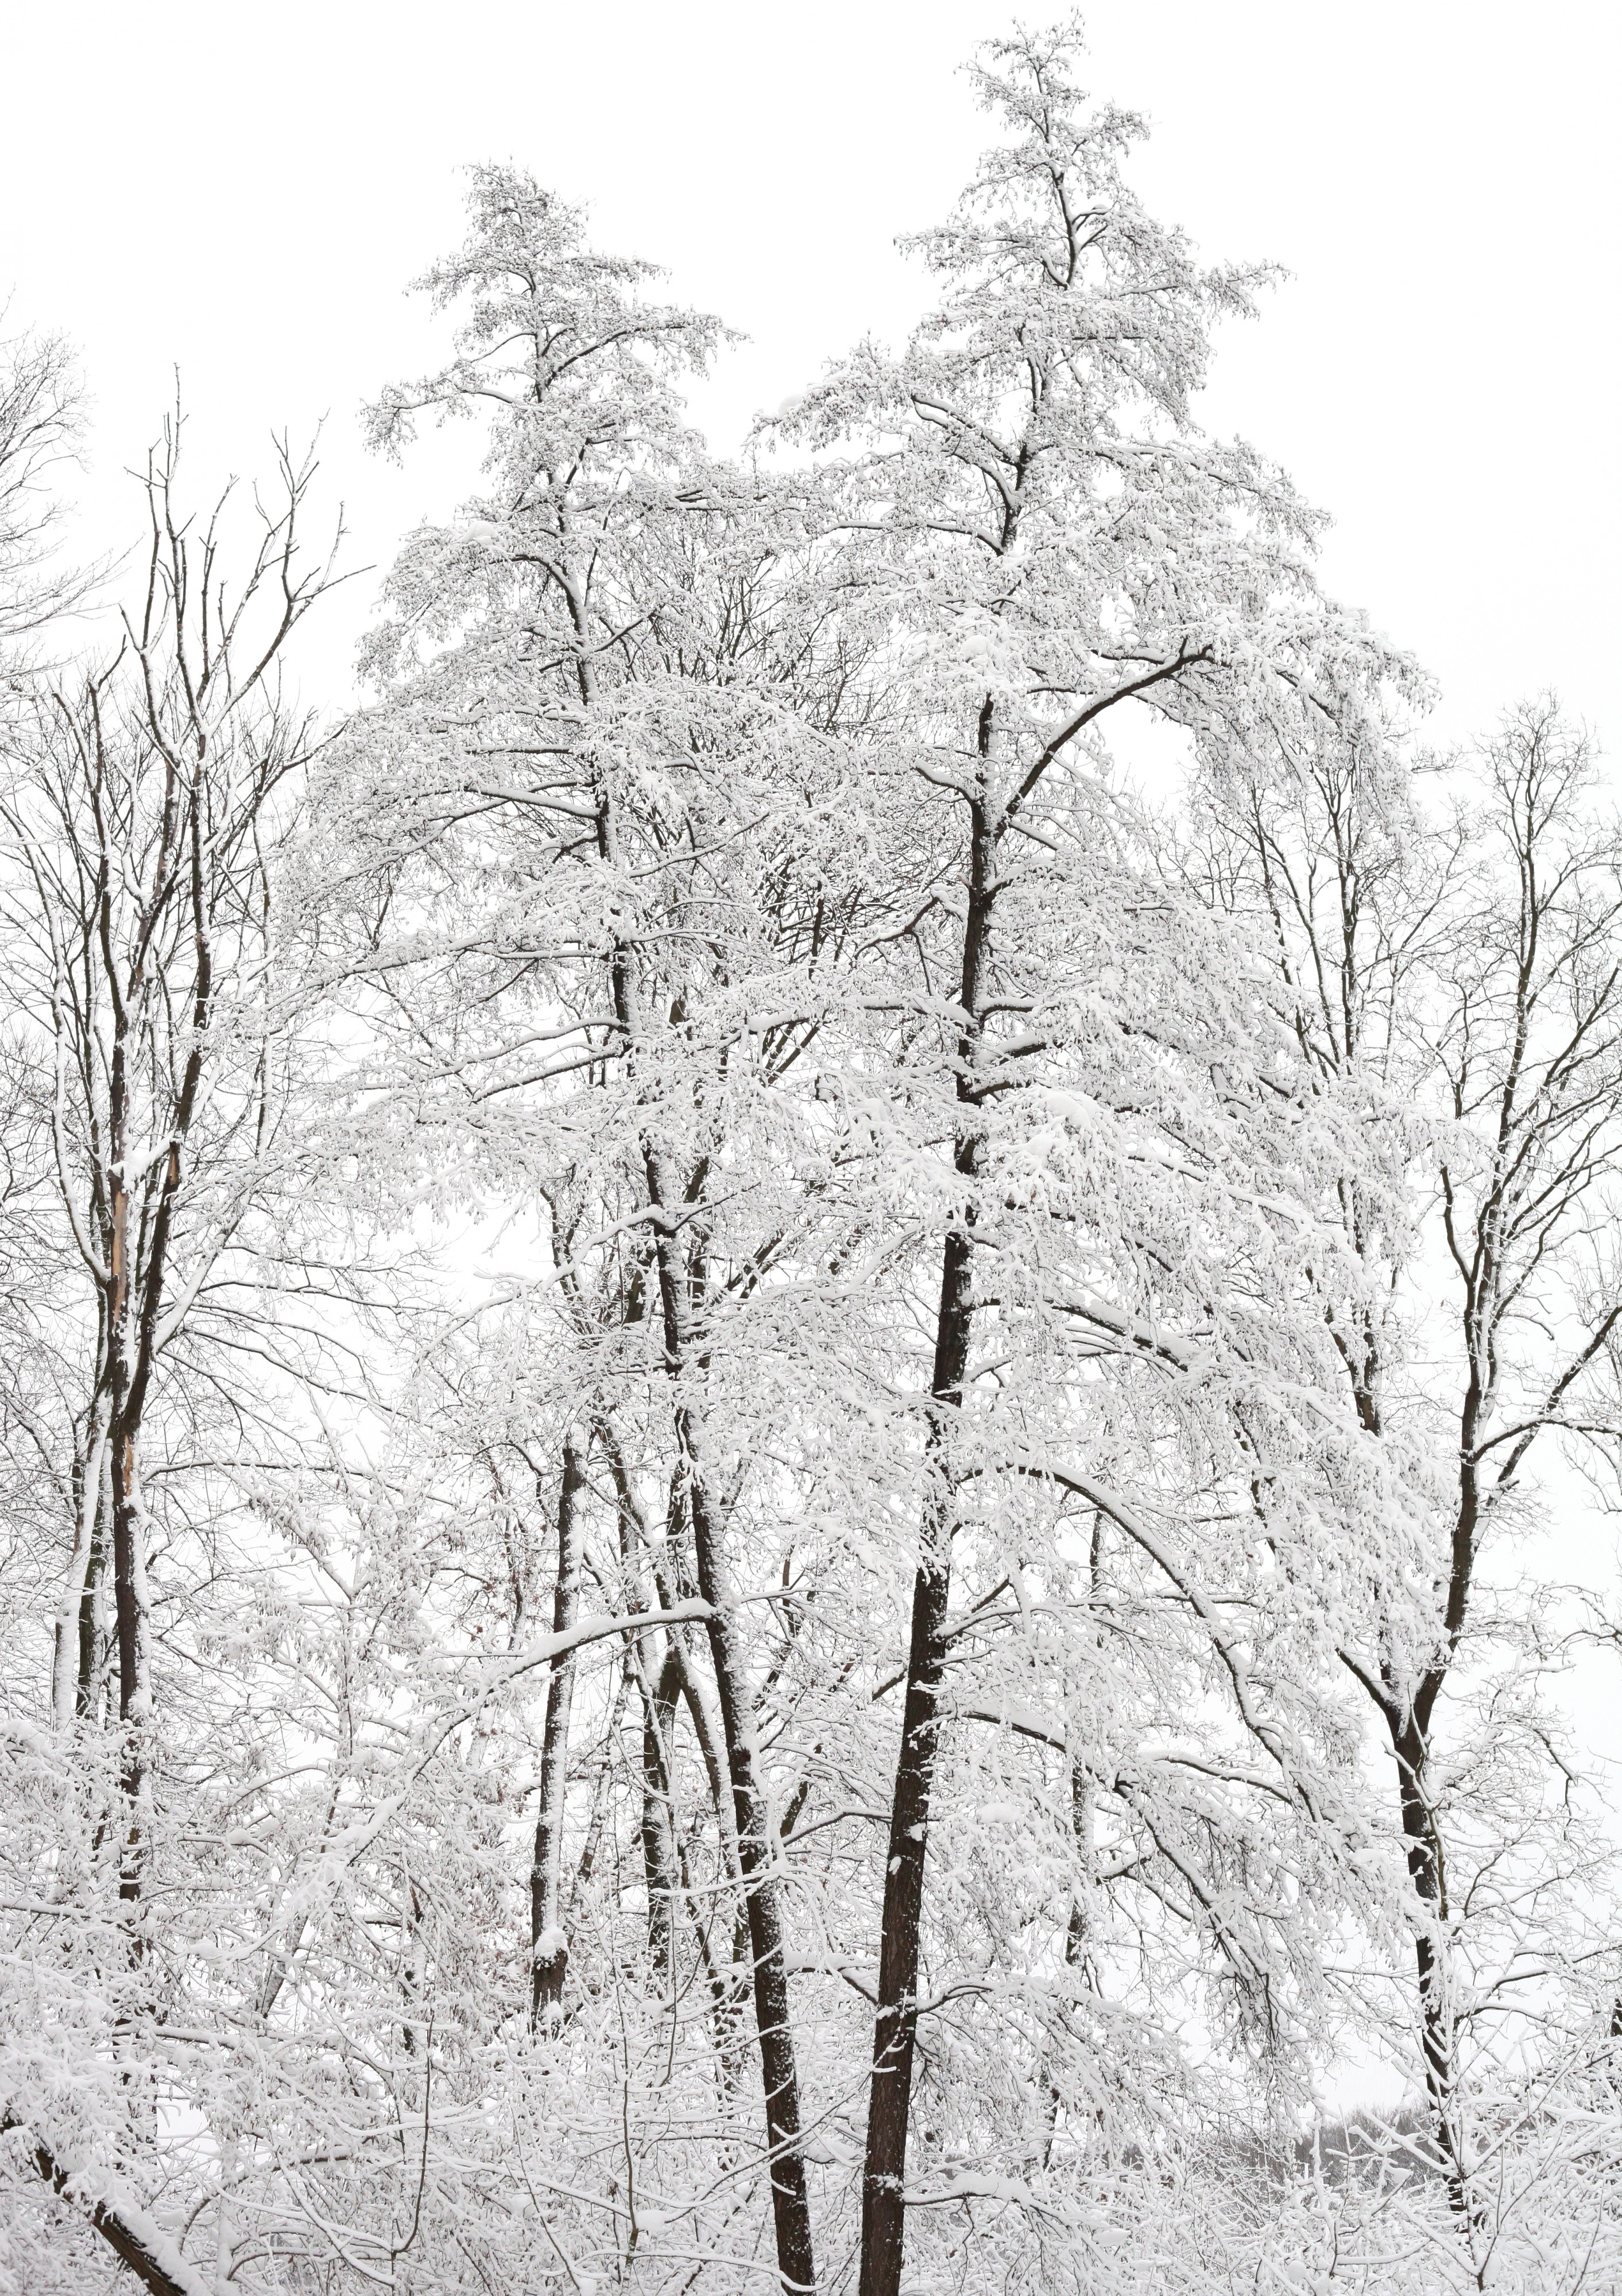 forest in snow in December 2012, photo 9